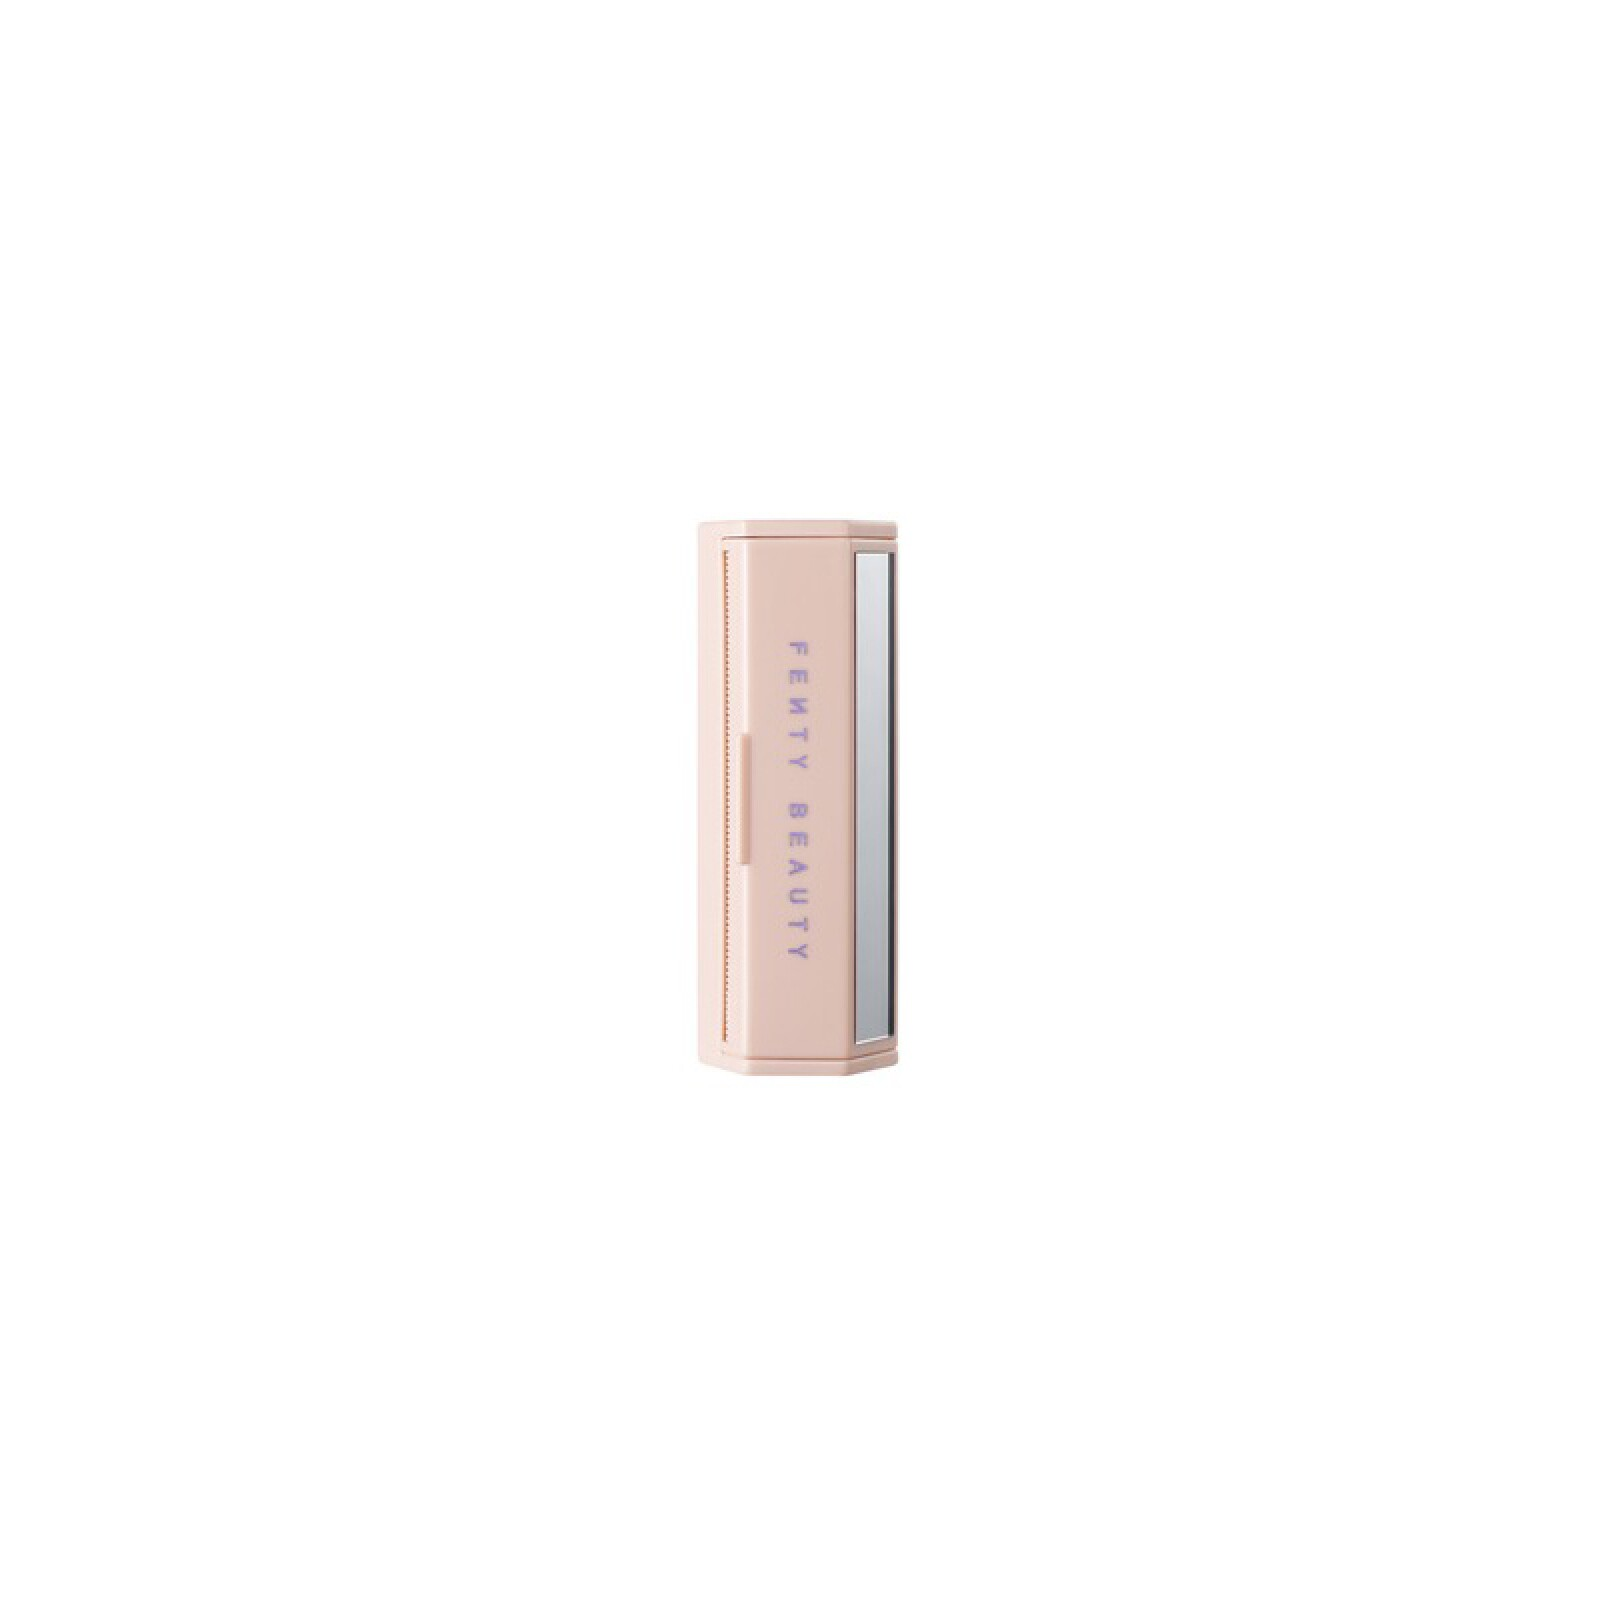 pocket friendly-maquillaje-travel size-mini-makeup-fenty